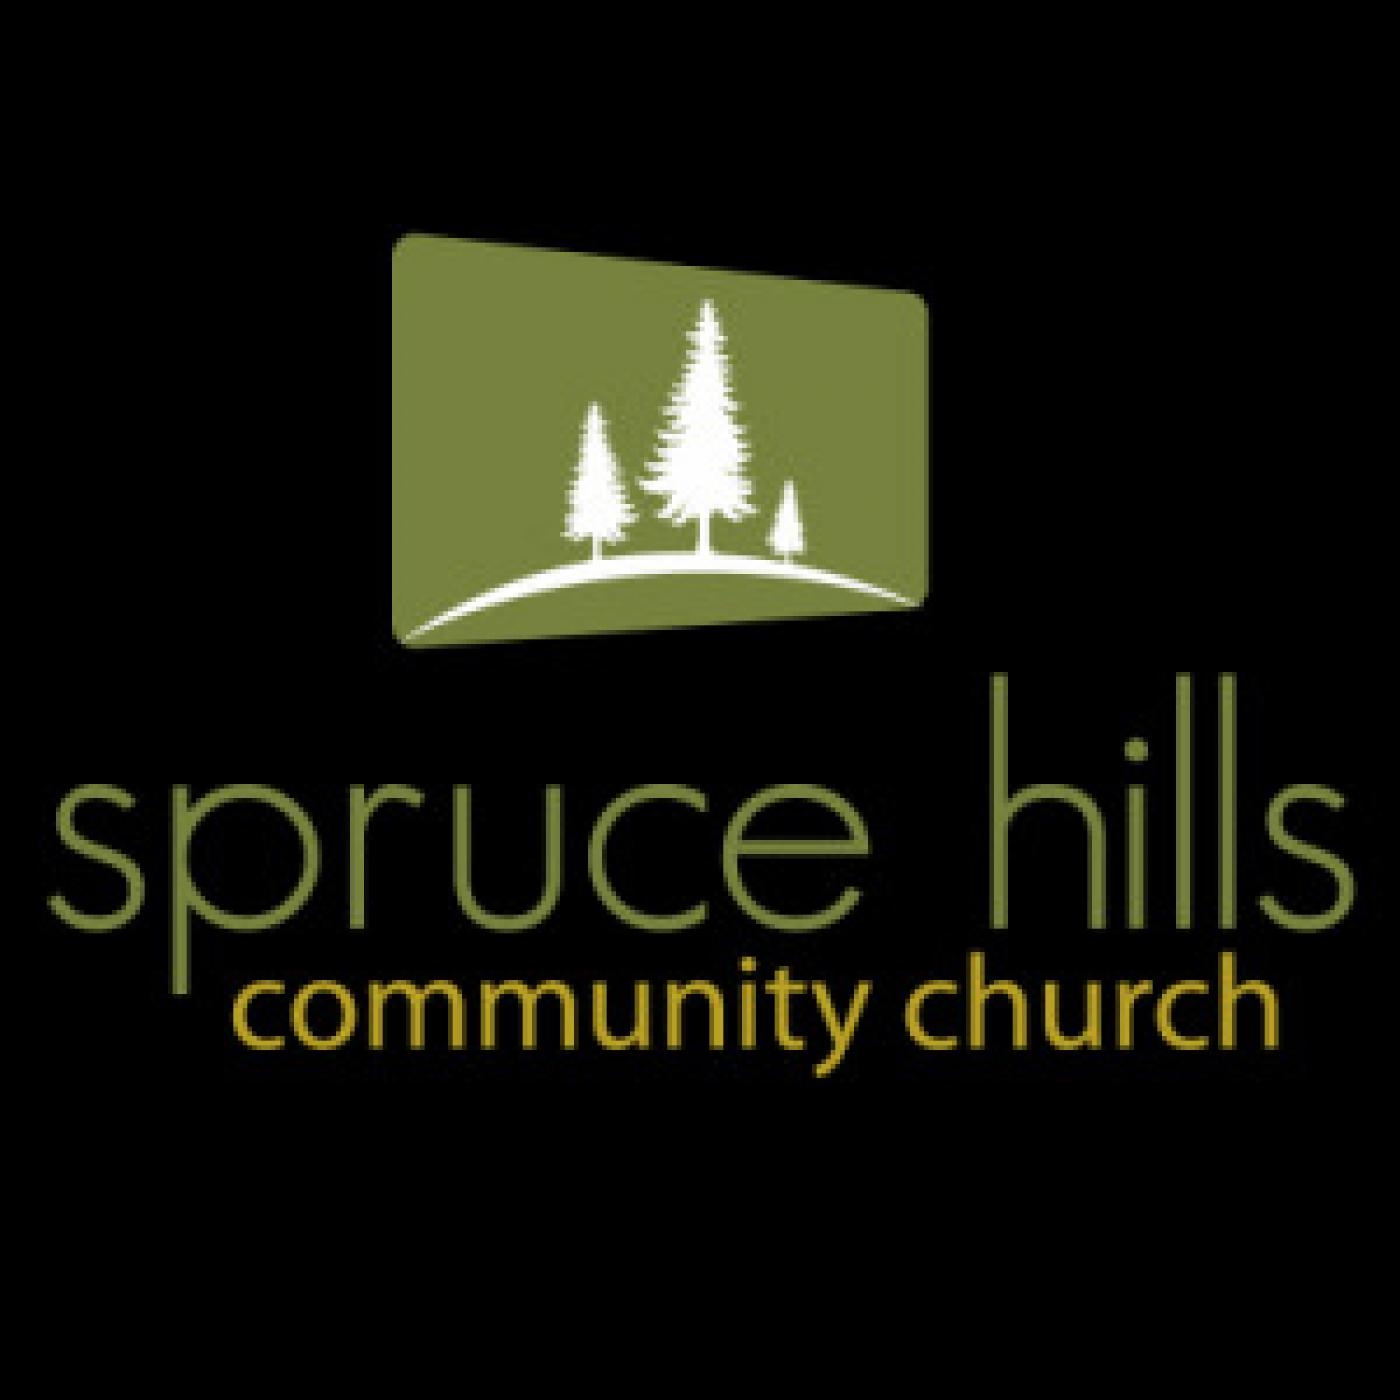 Spruce Hills Community Church